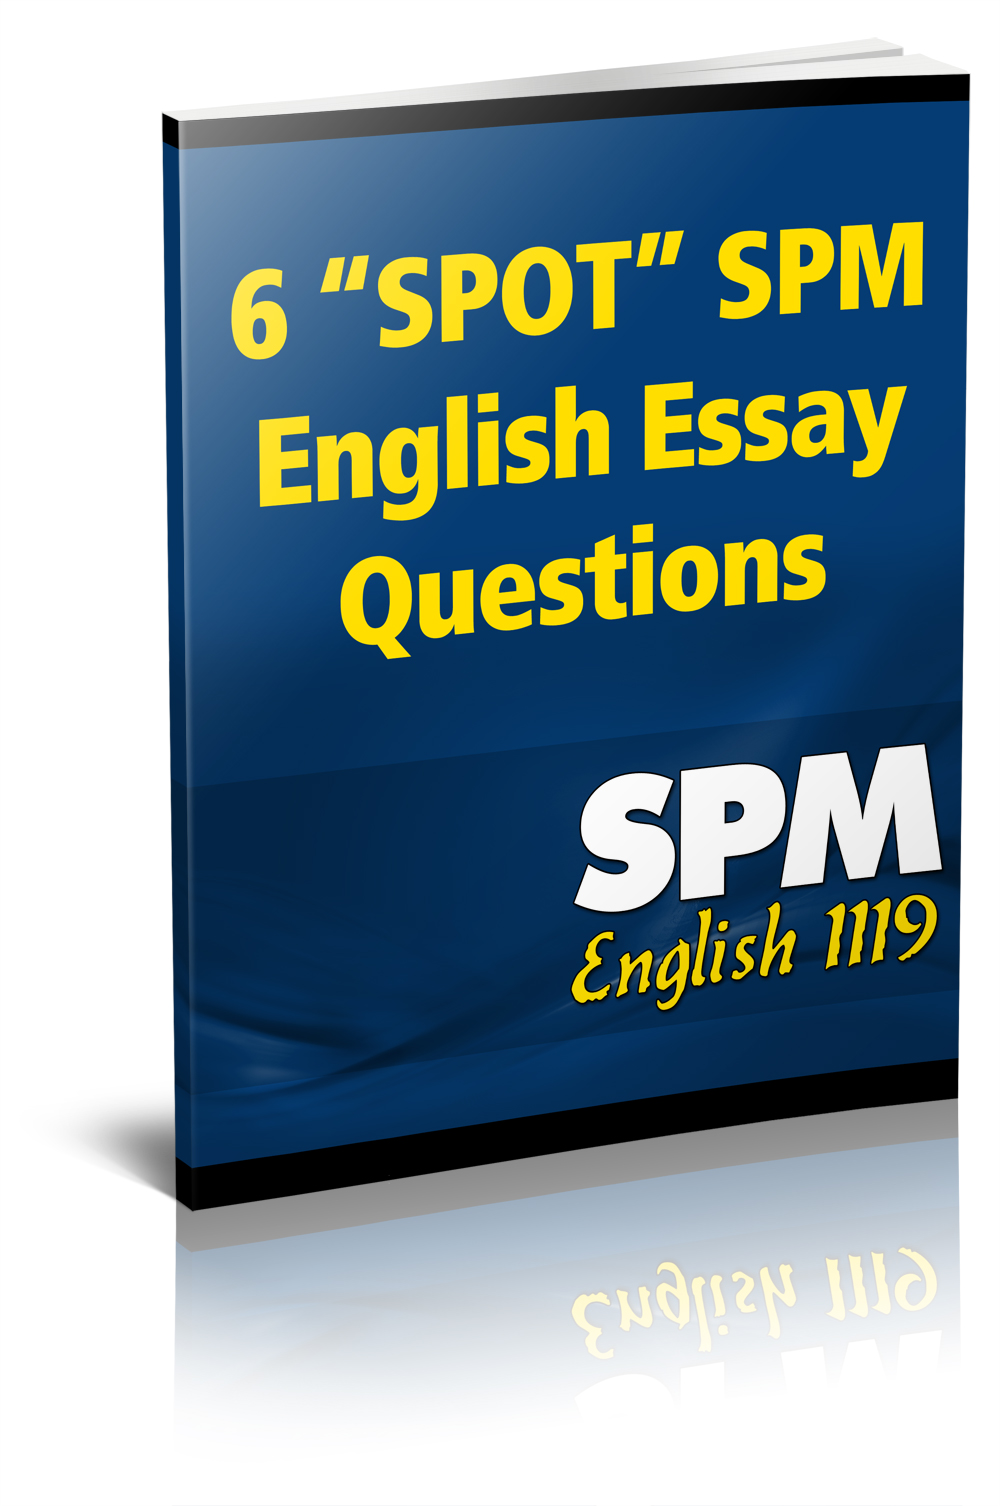 Buy essays from scratch online cheap